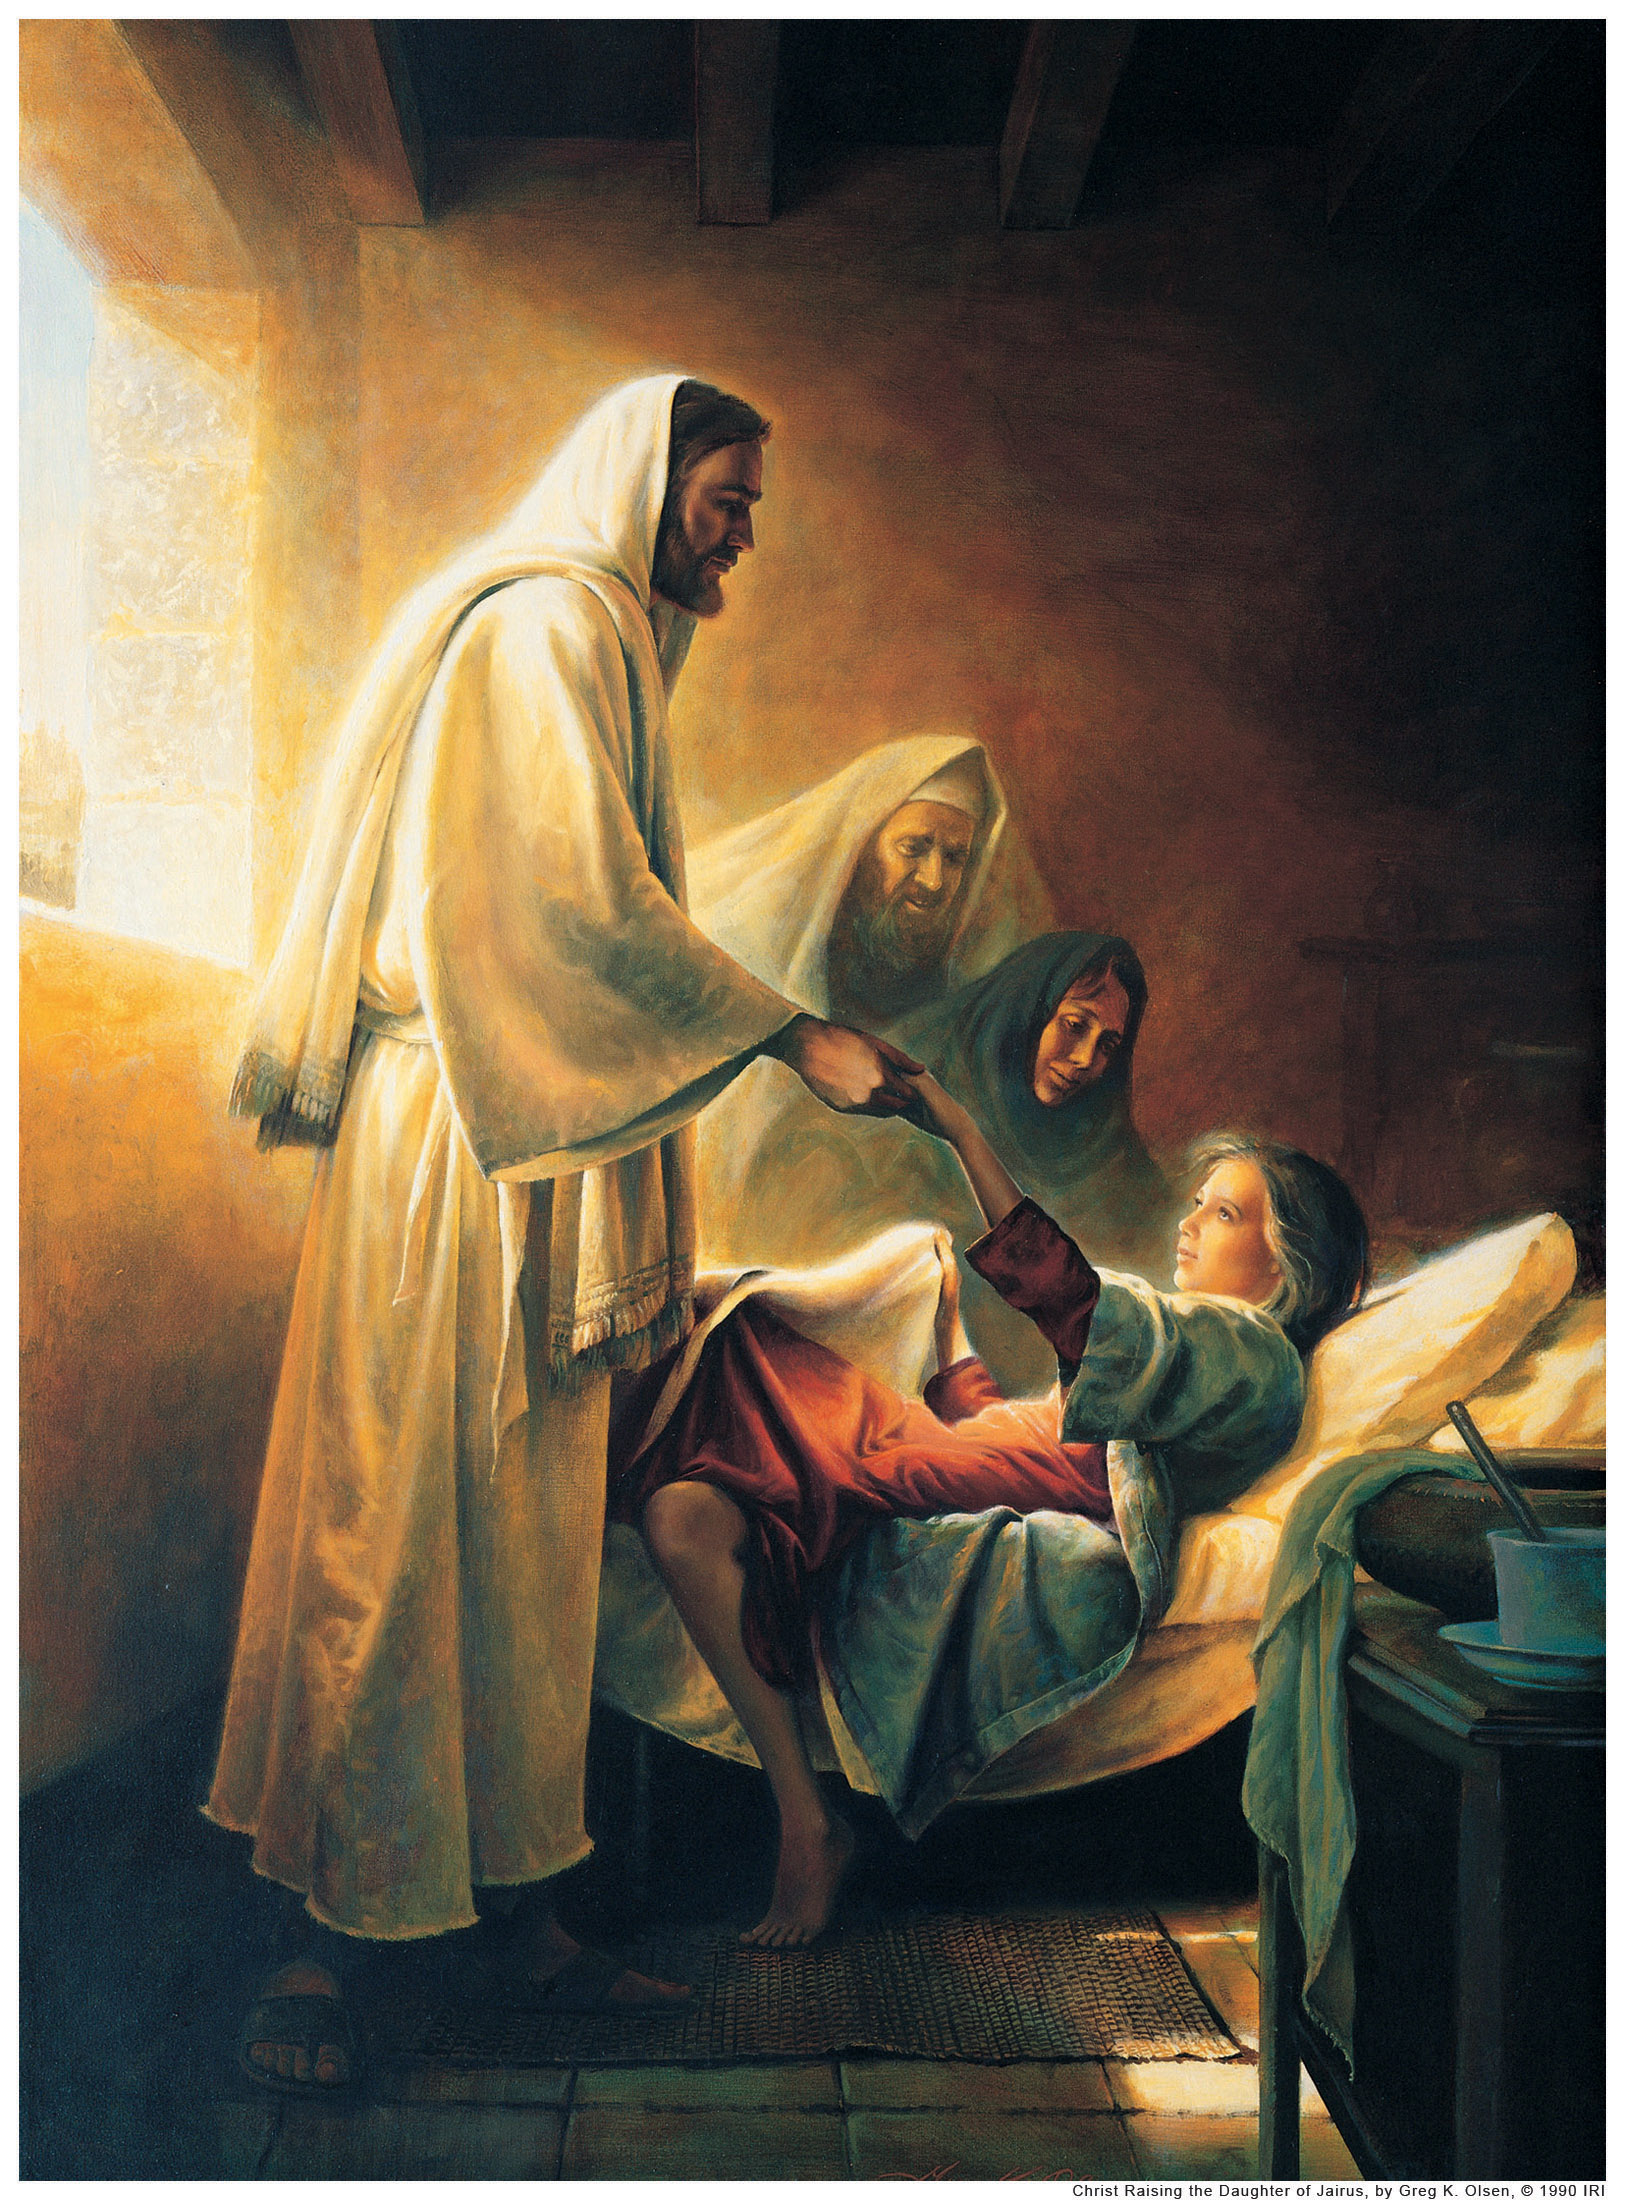 a story of joseph and his relation to jesus christ Now the birth of jesus christ was as follows: after his mother mary was betrothed to joseph, before they came together, she was found with child of the holy spirit then joseph her husband, being a just man, and not wanting to make her a public example, was minded to put her away secretly.